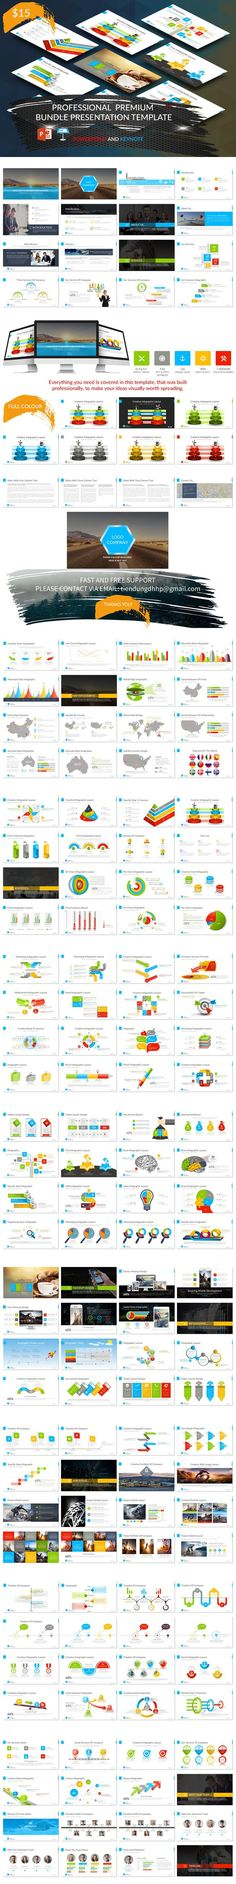 Professional Presentation Template. Business Infographic